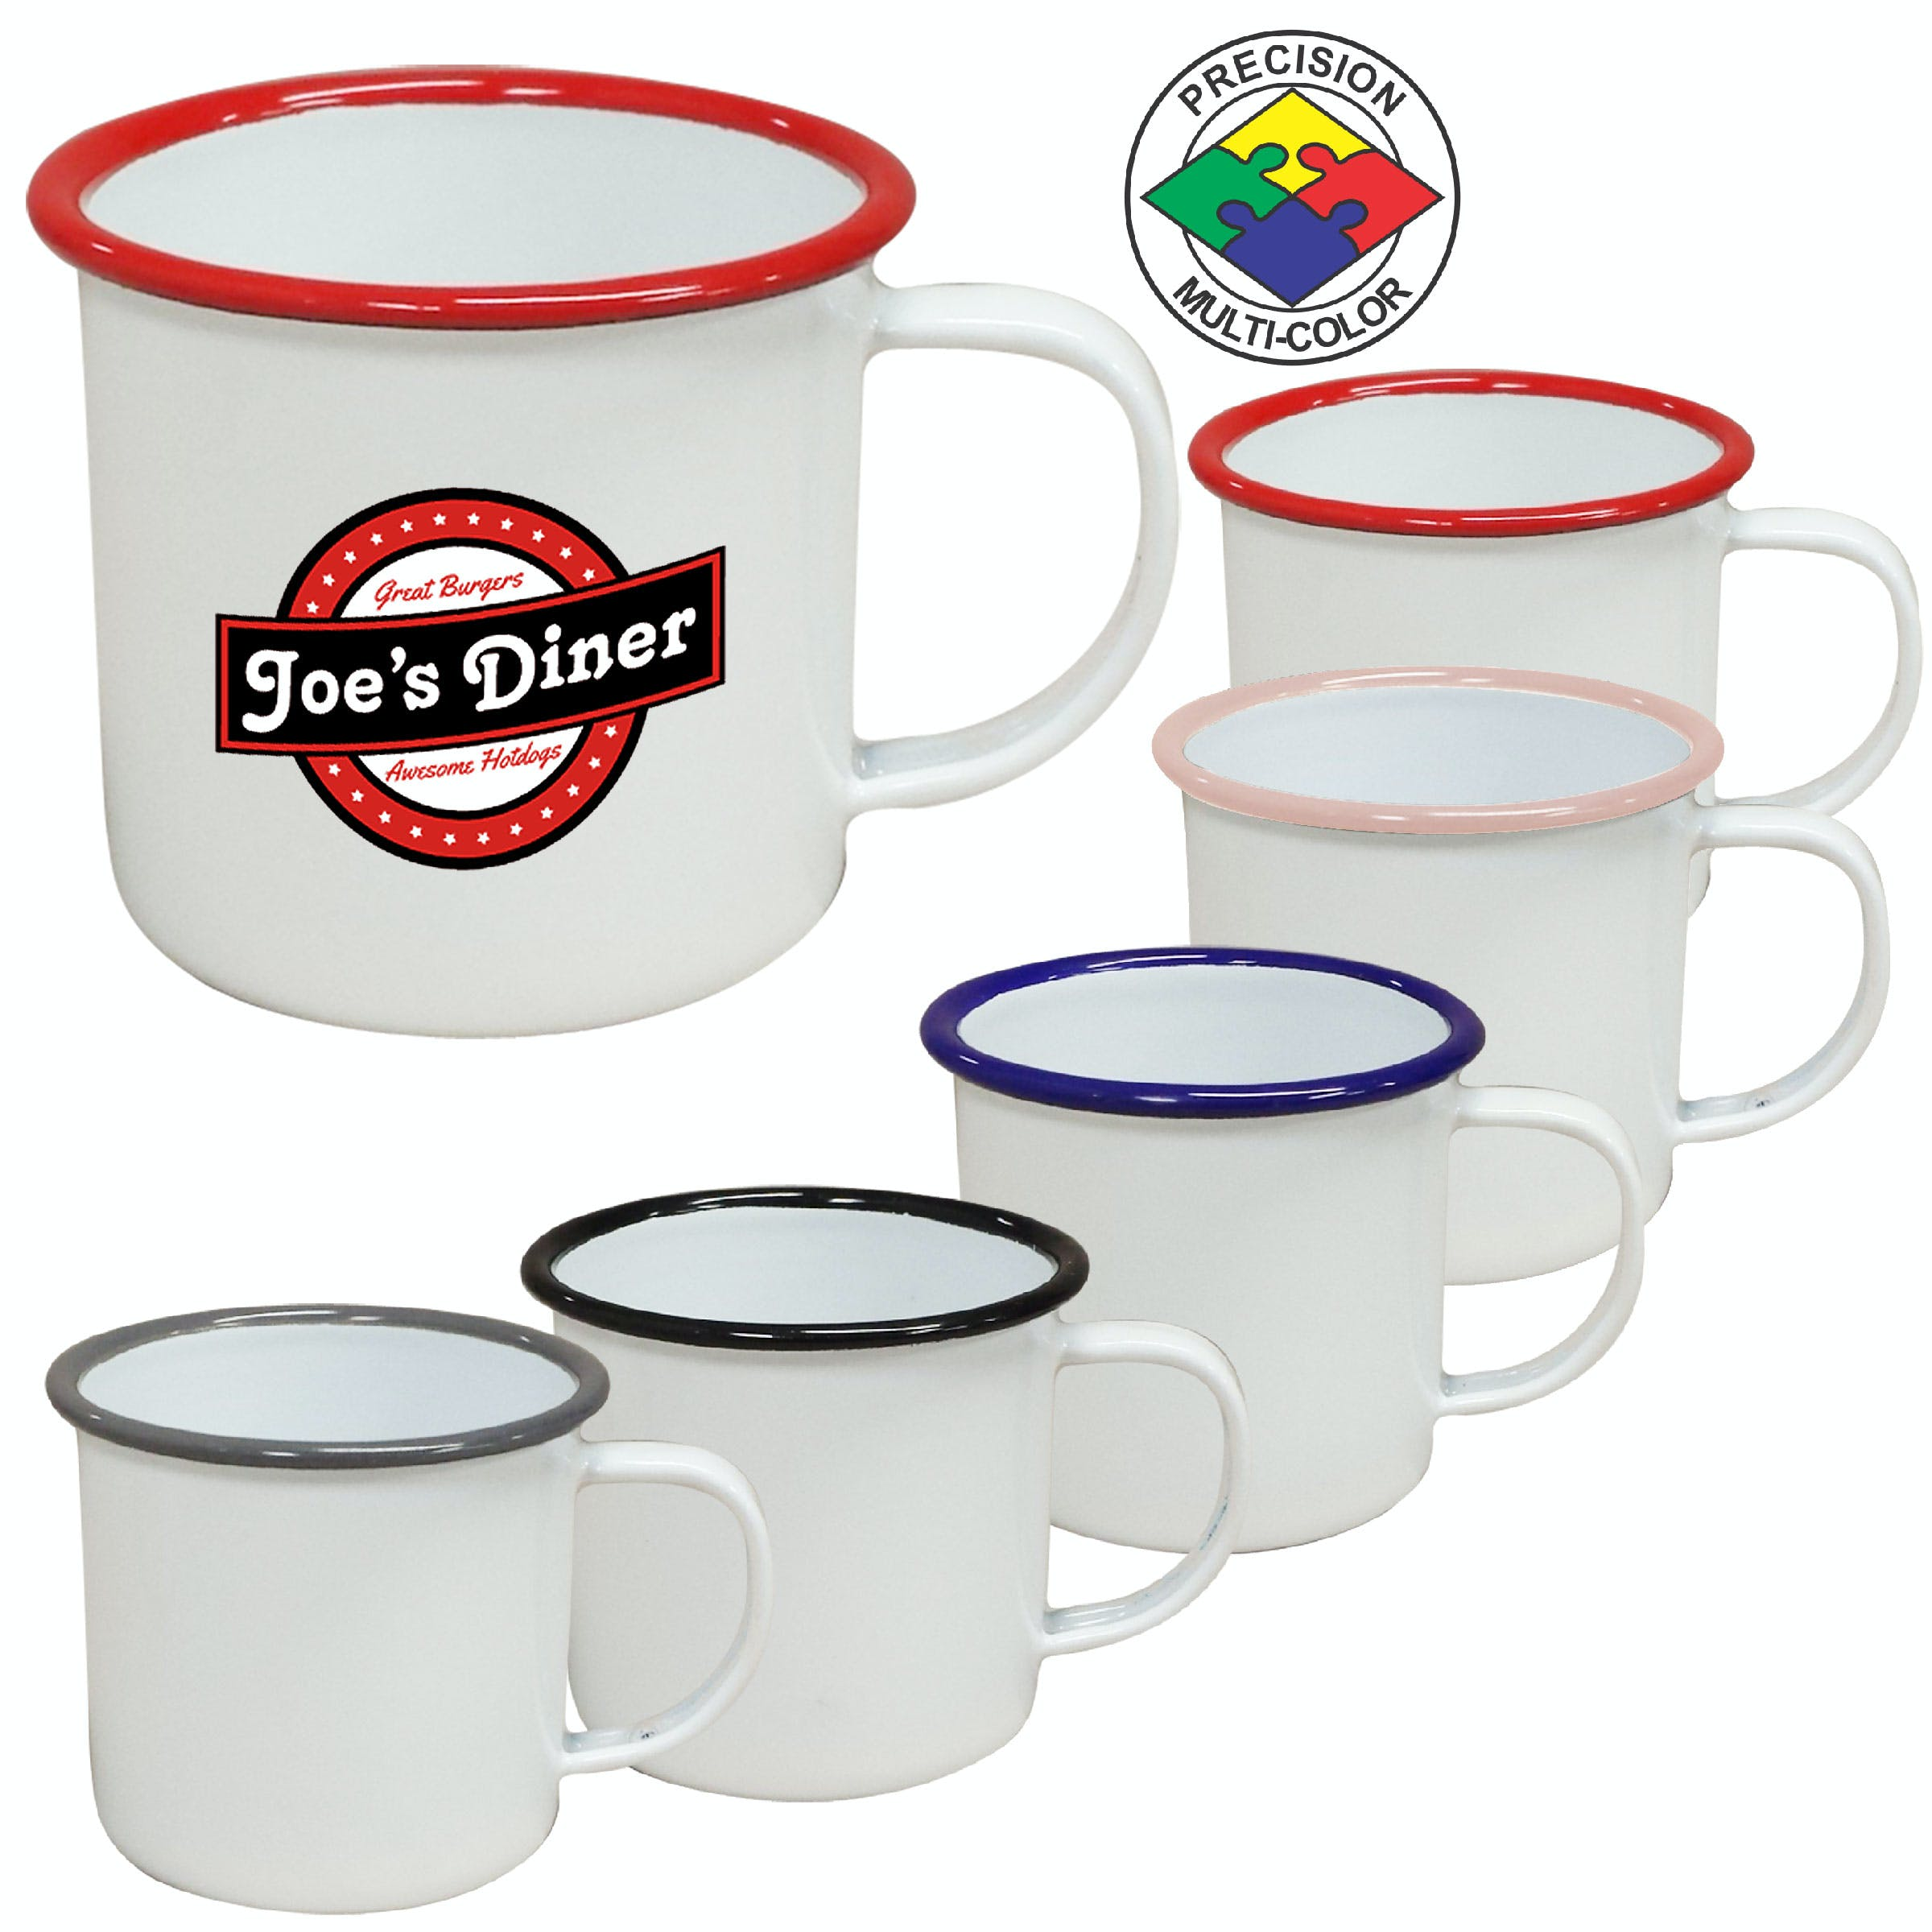 12oz White Enameled Steel Campfire Mugs with colored Rim